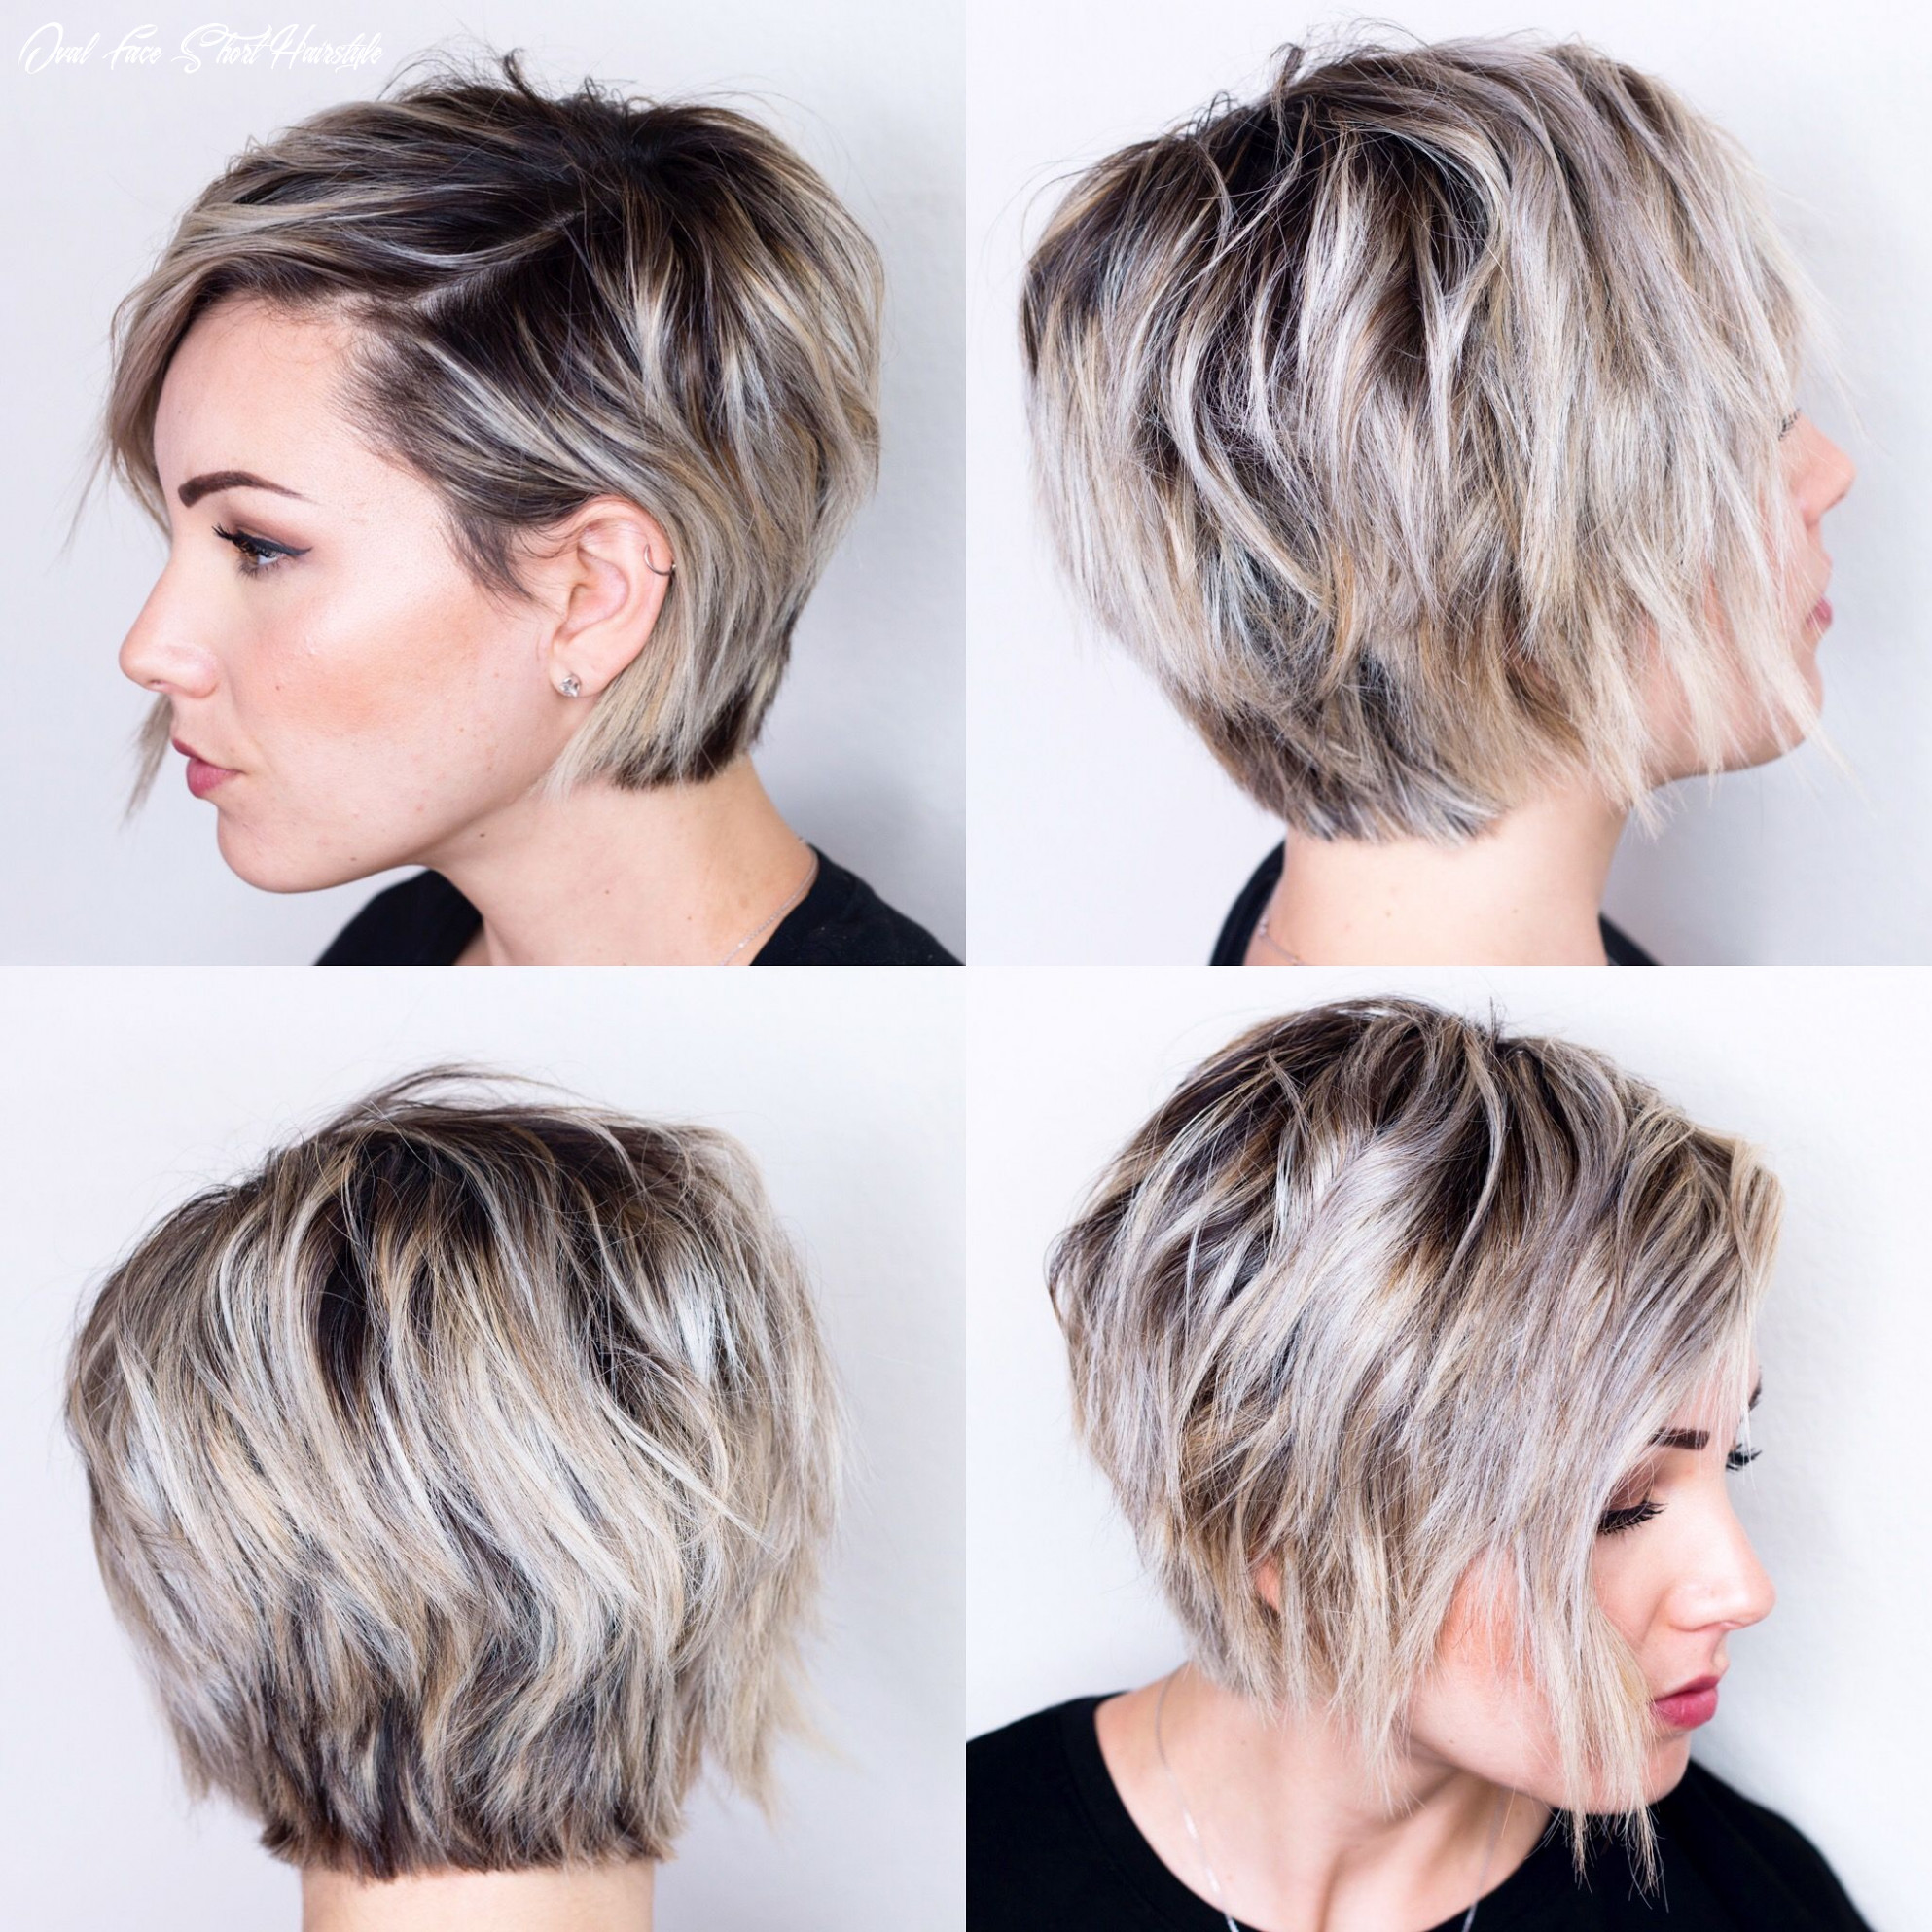 10 view of short hair | oval face hairstyles, growing out short